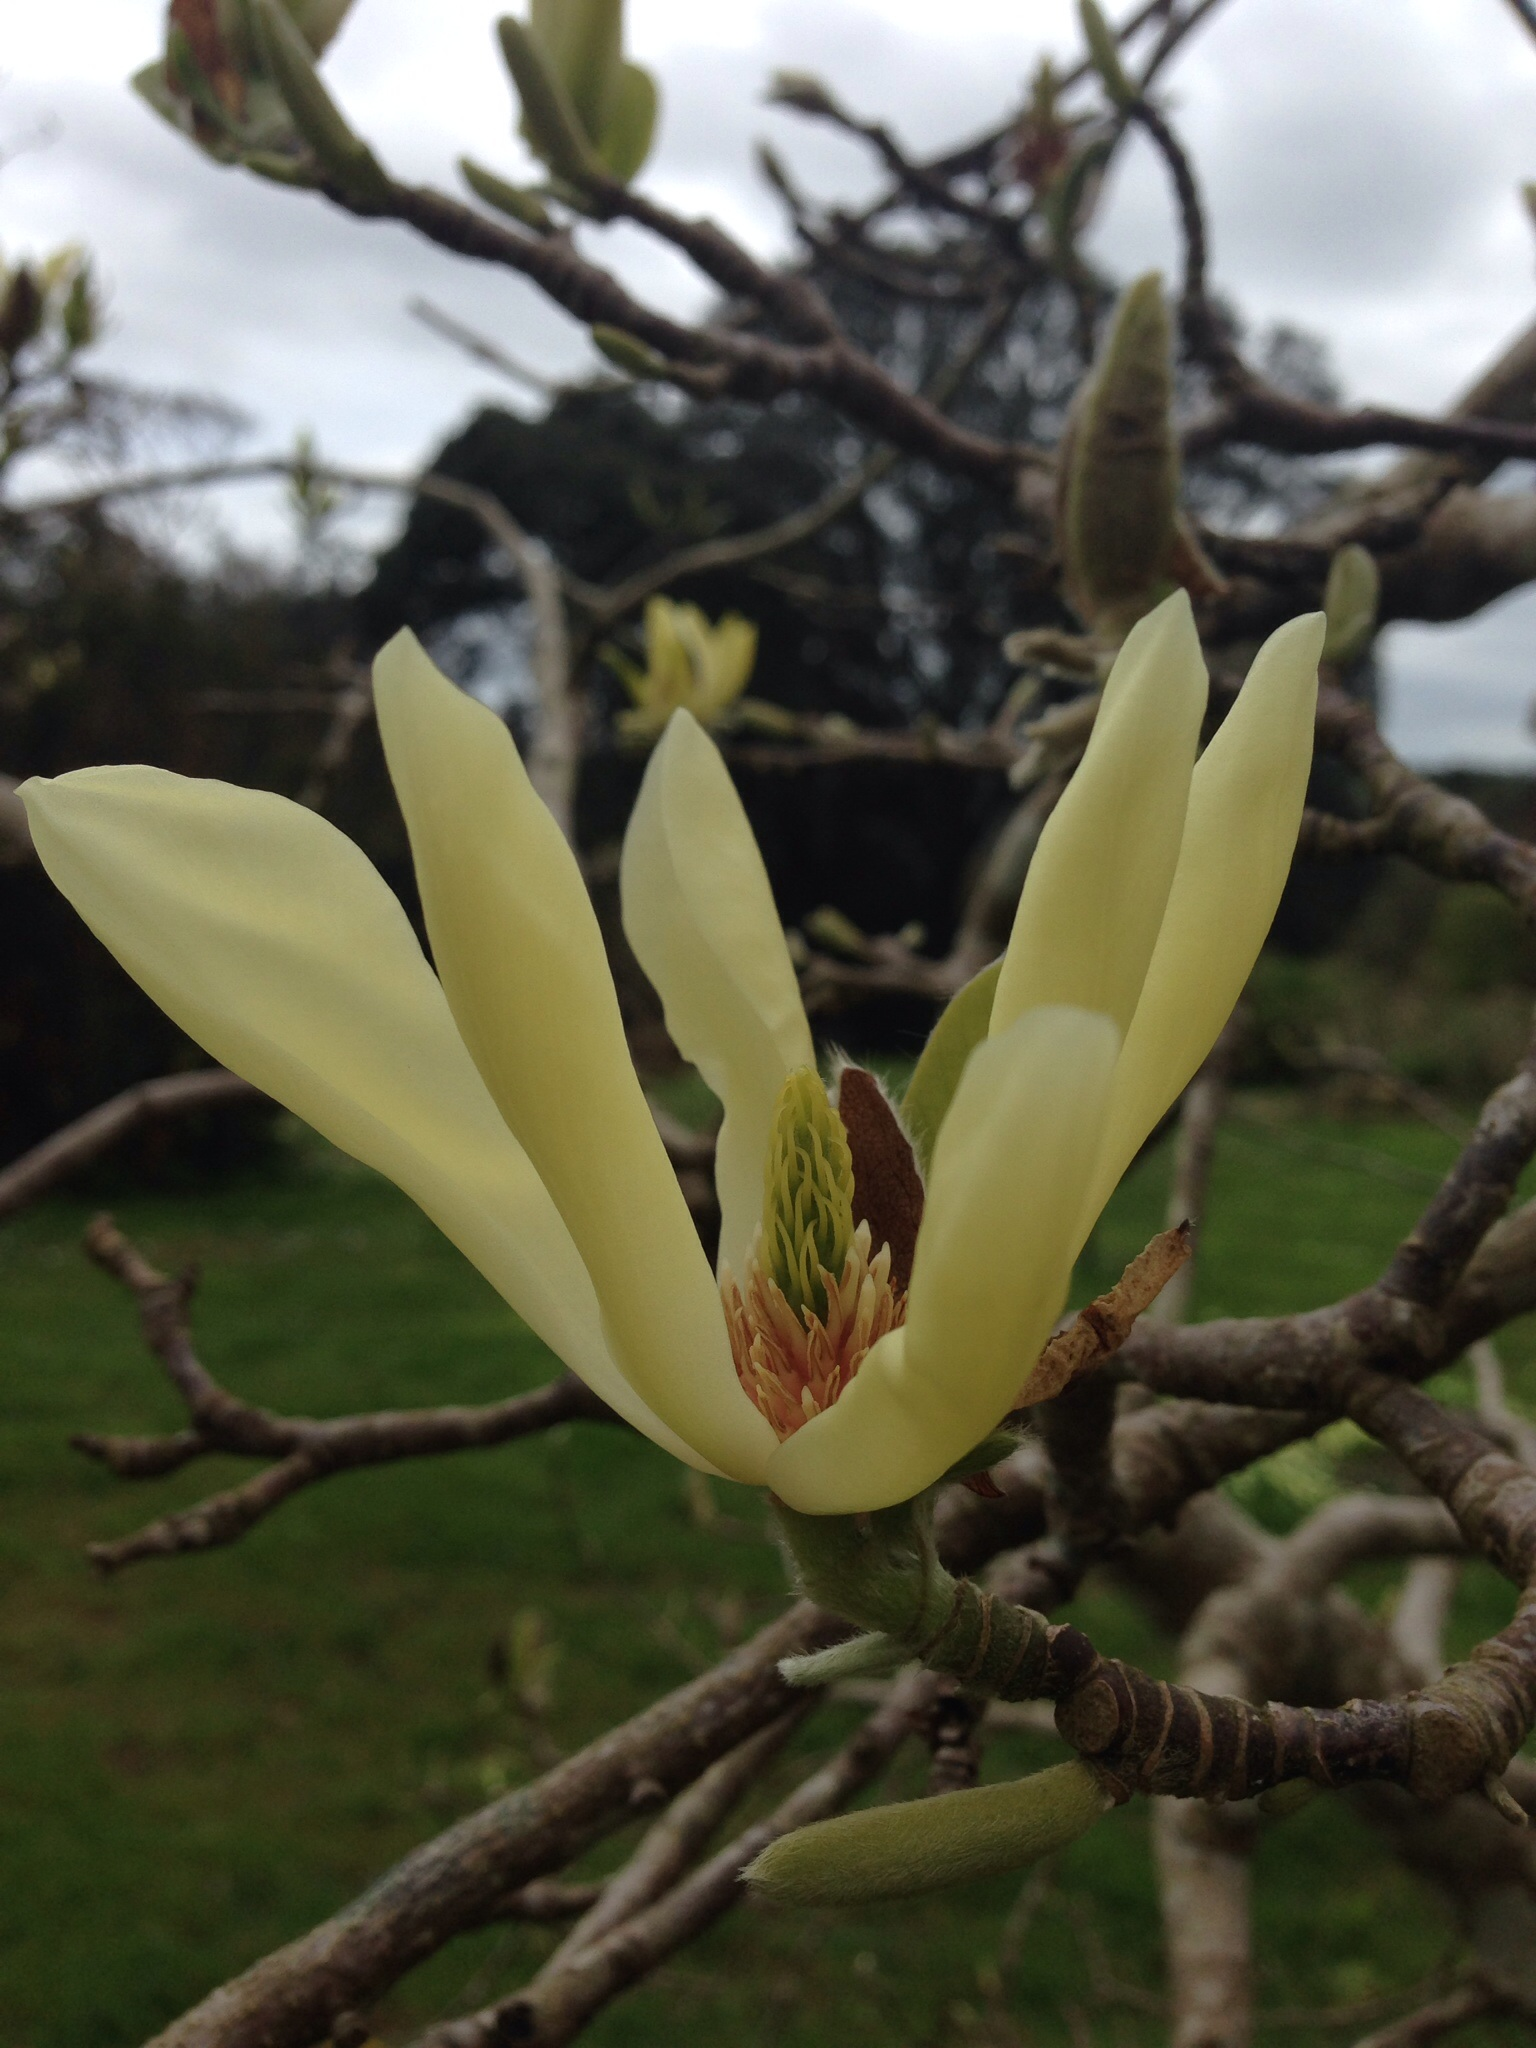 a stunning lemon magnolia at Tregothan charity open day - don't we all wish magnolia grew as fast as willow?!